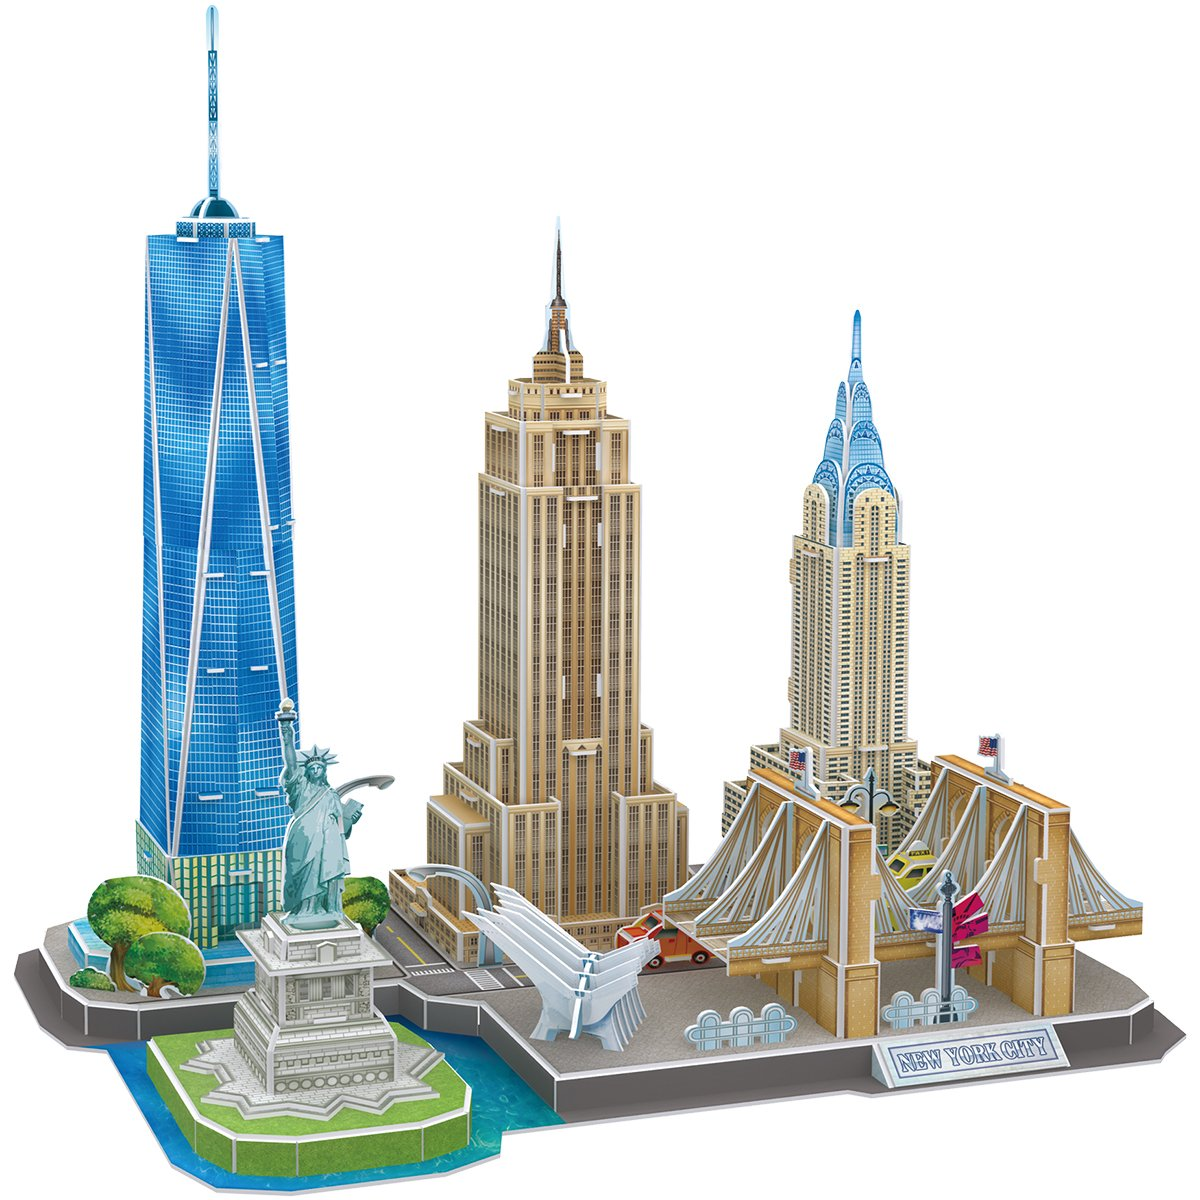 CubicFun New York City Skyline 3D Model Kits Puzzle Craft Toys Gift, 123 Pieces MC255h-0